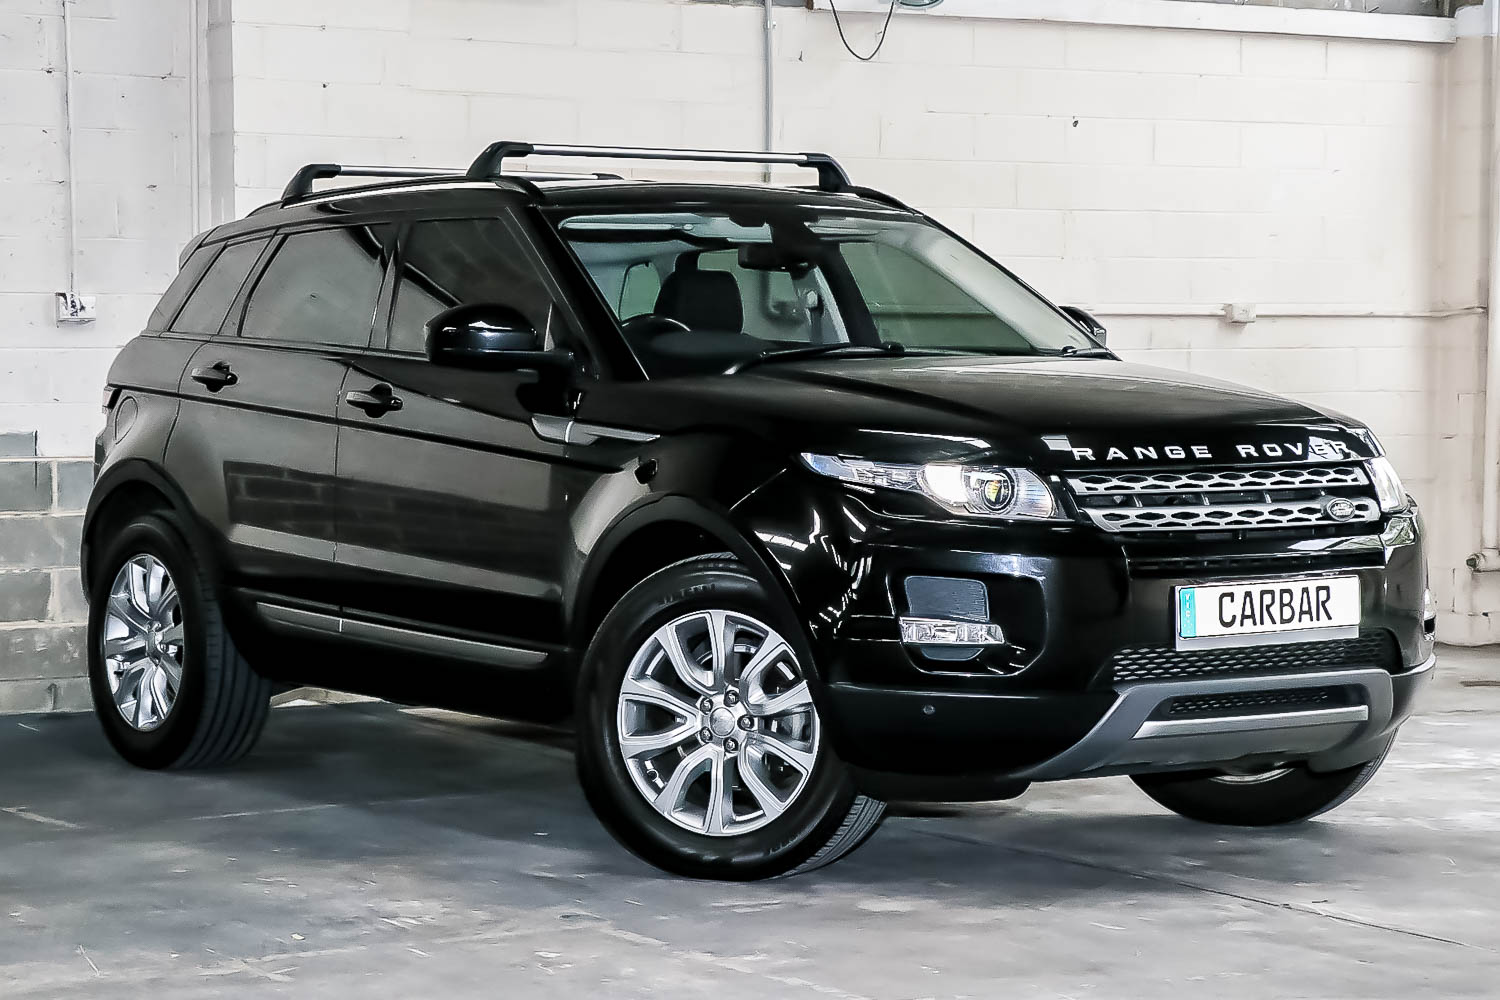 Try A Used Car For 3 Days Cars Australia Carbar Gl450 Fuel Filter 2014 Land Rover Range Evoque